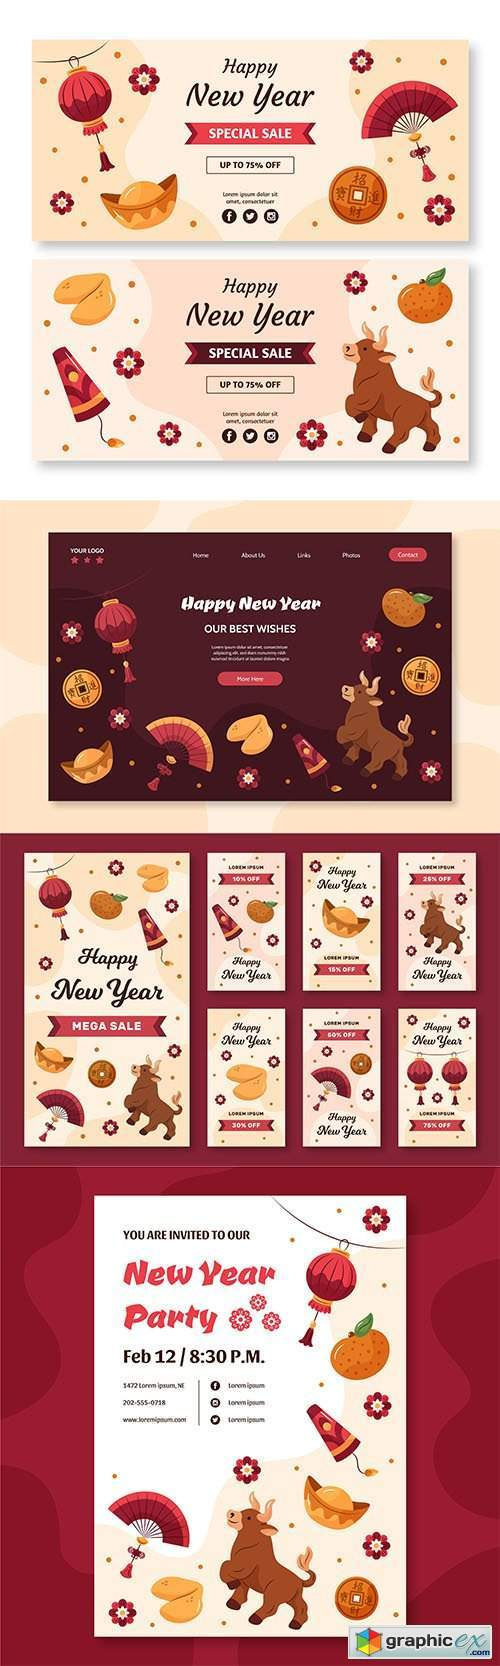 Hand-drawn instagram stories, banner,landing page collection chinese new year ox